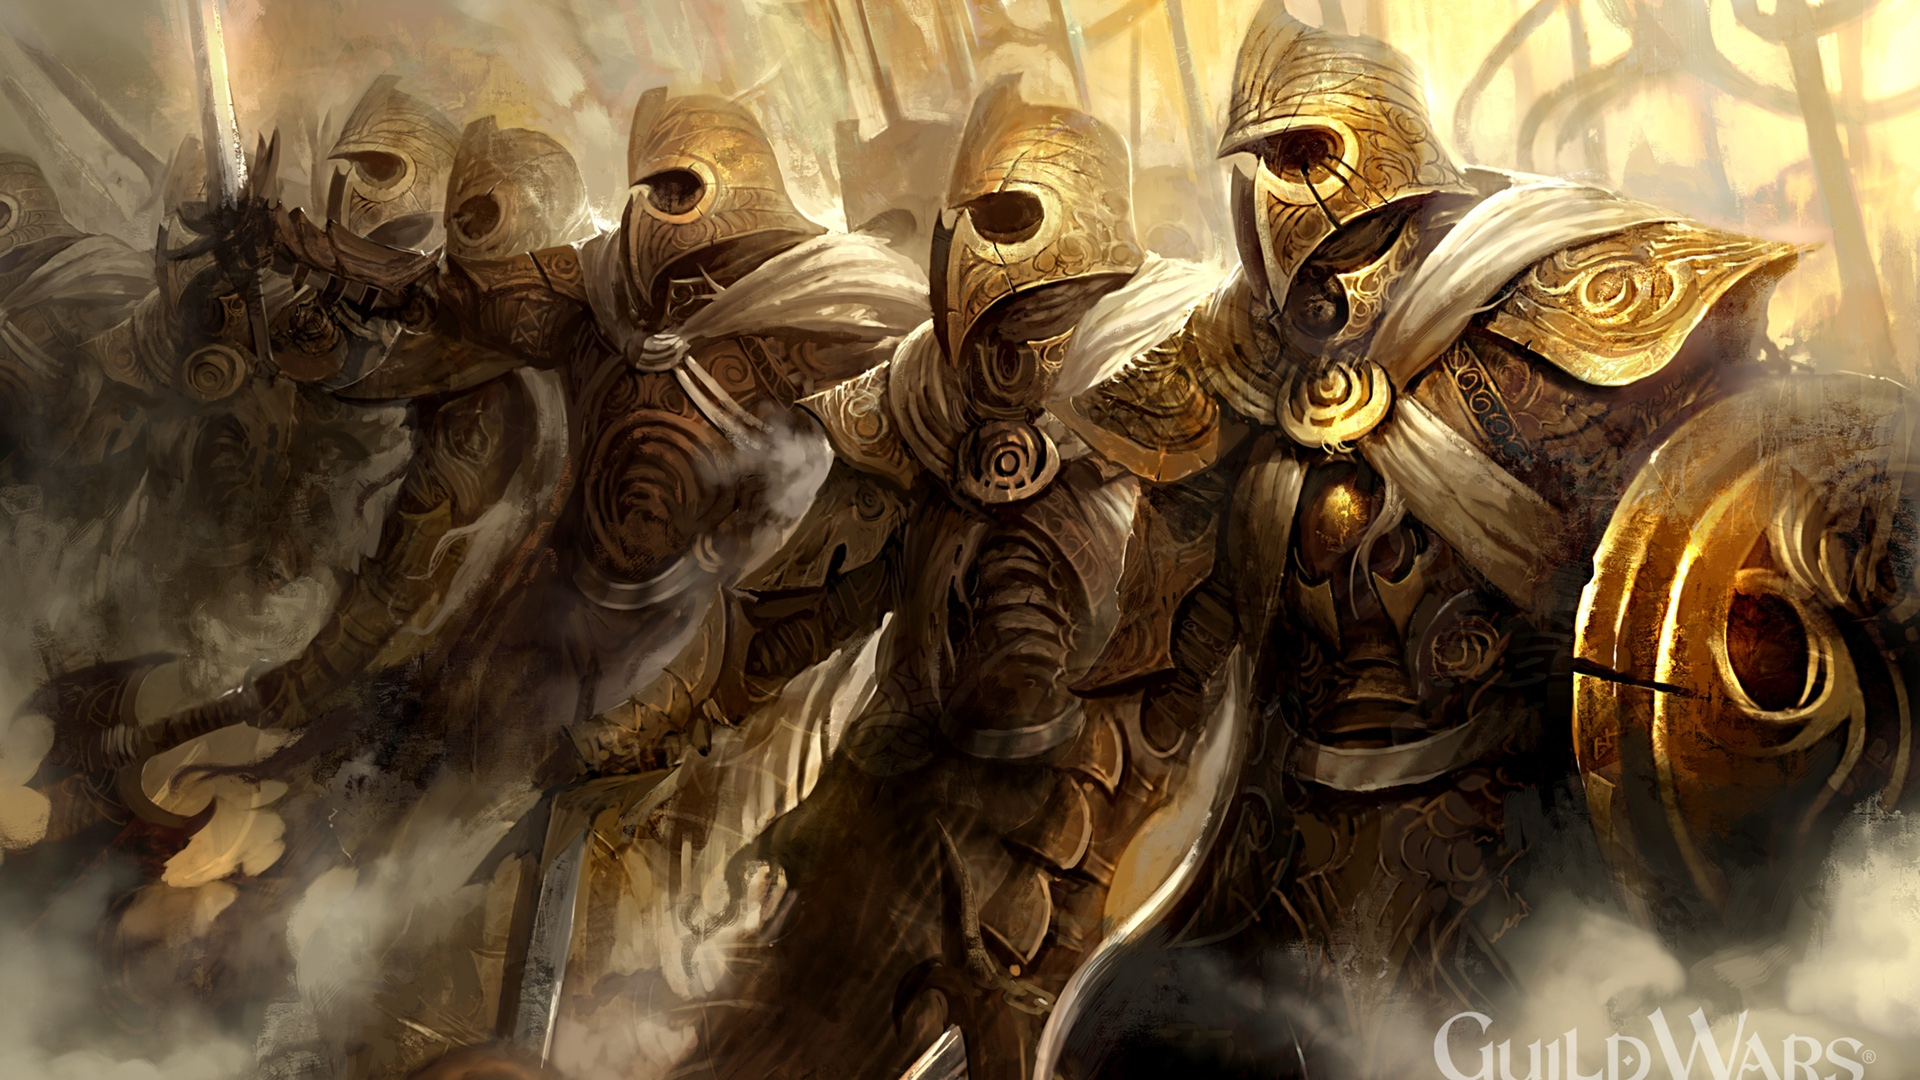 Fabulous-Guild-Wars-Army-Armament-Helmets-%C2%AB-Kuff-Games-wallpaper-wpc5804678